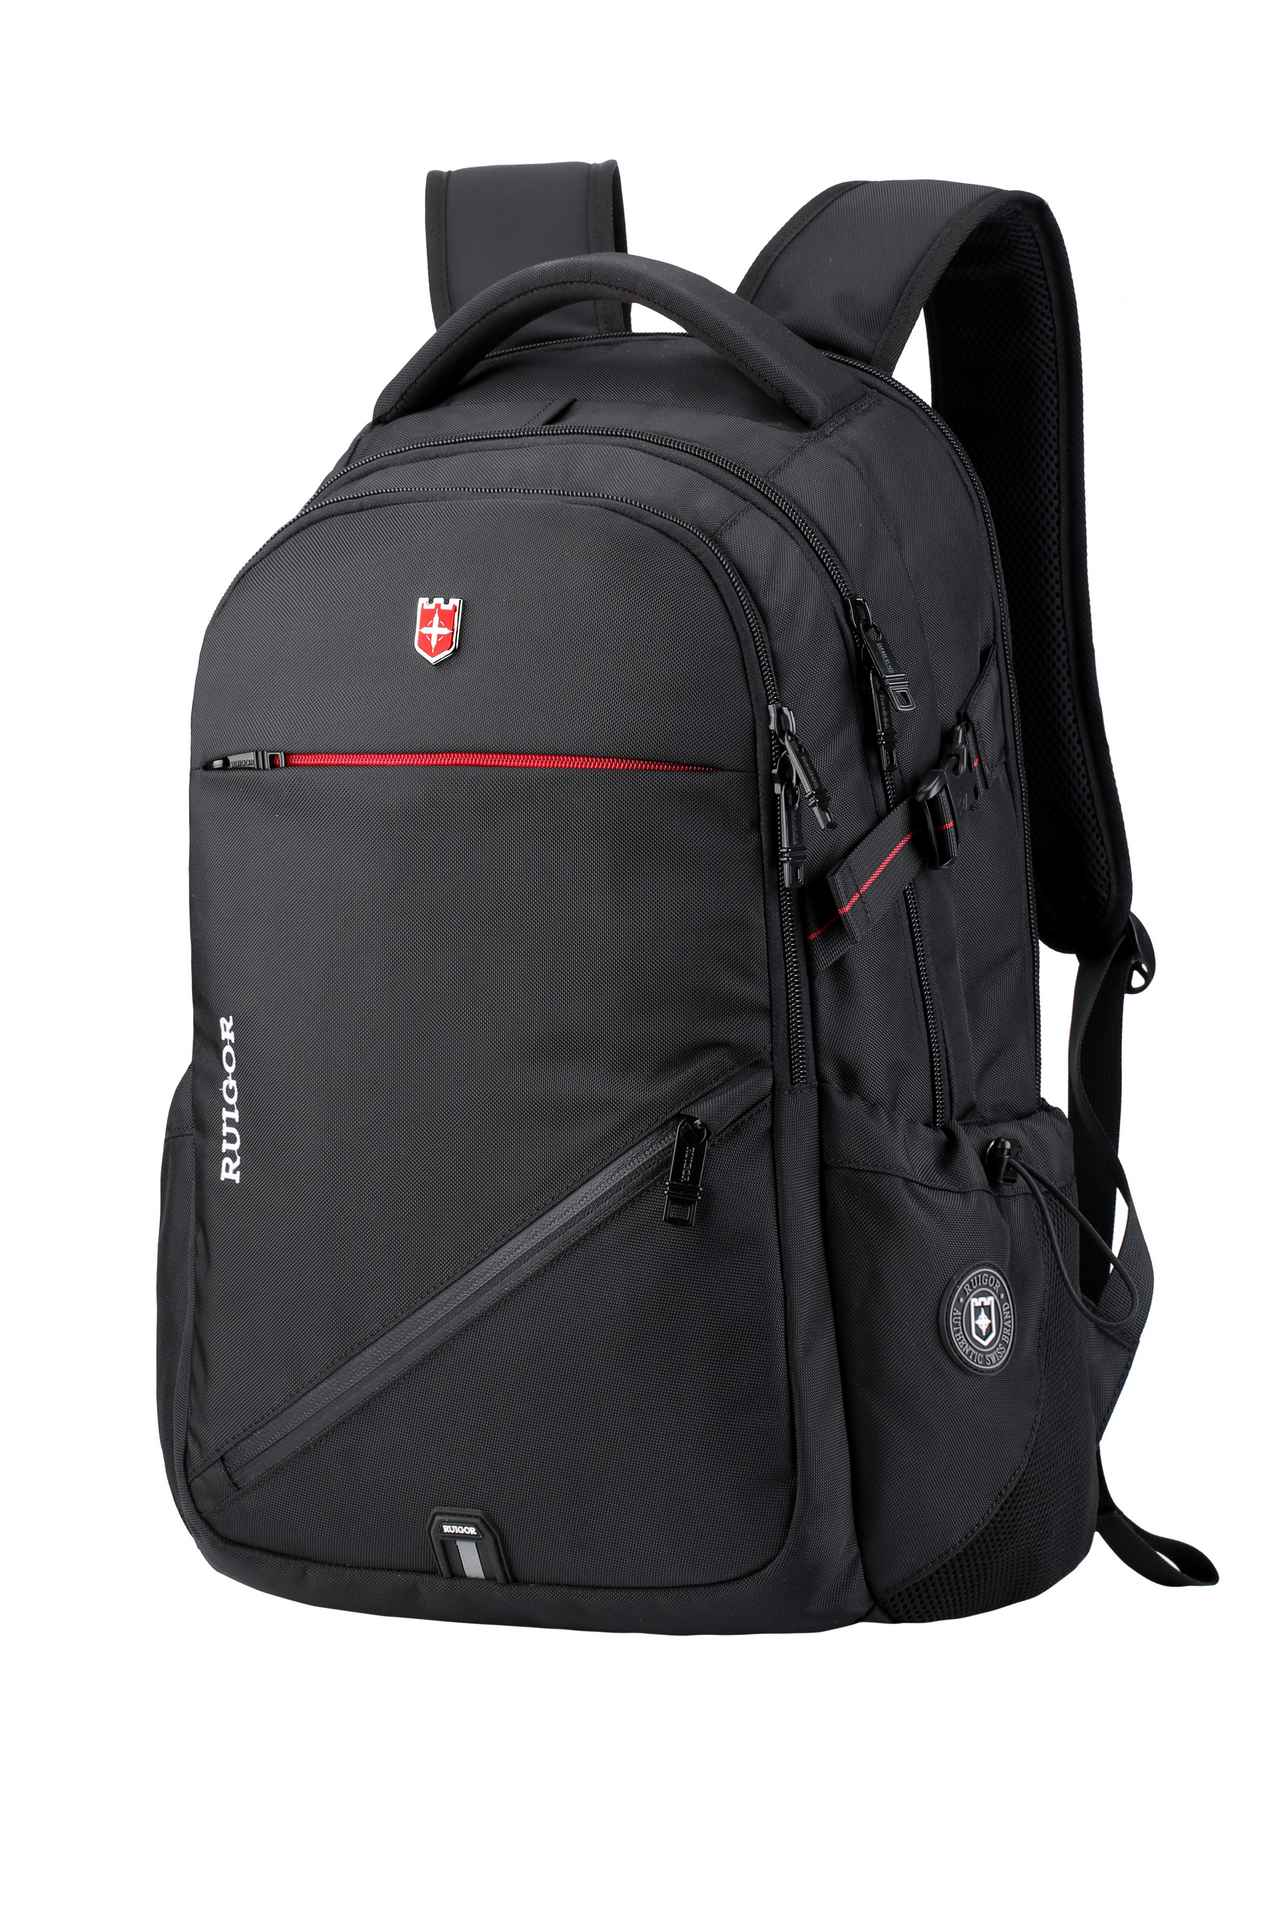 RUIGOR ICON 25 Laptop Backpack Black - Unique Style